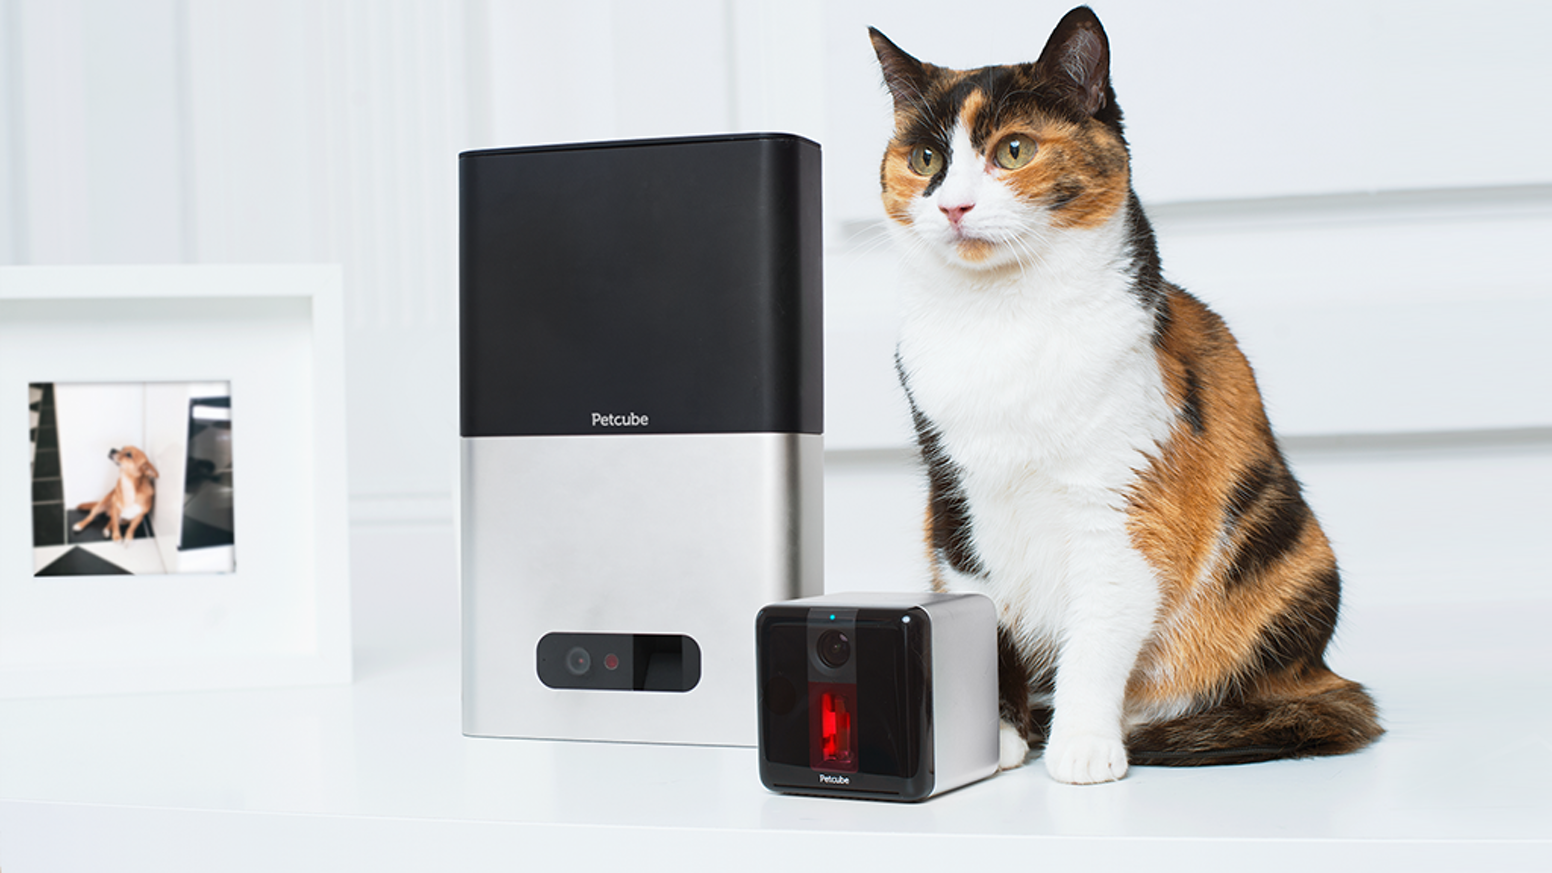 Petcube Bites + Petcube Play: Treat & Care for Pets Remotely